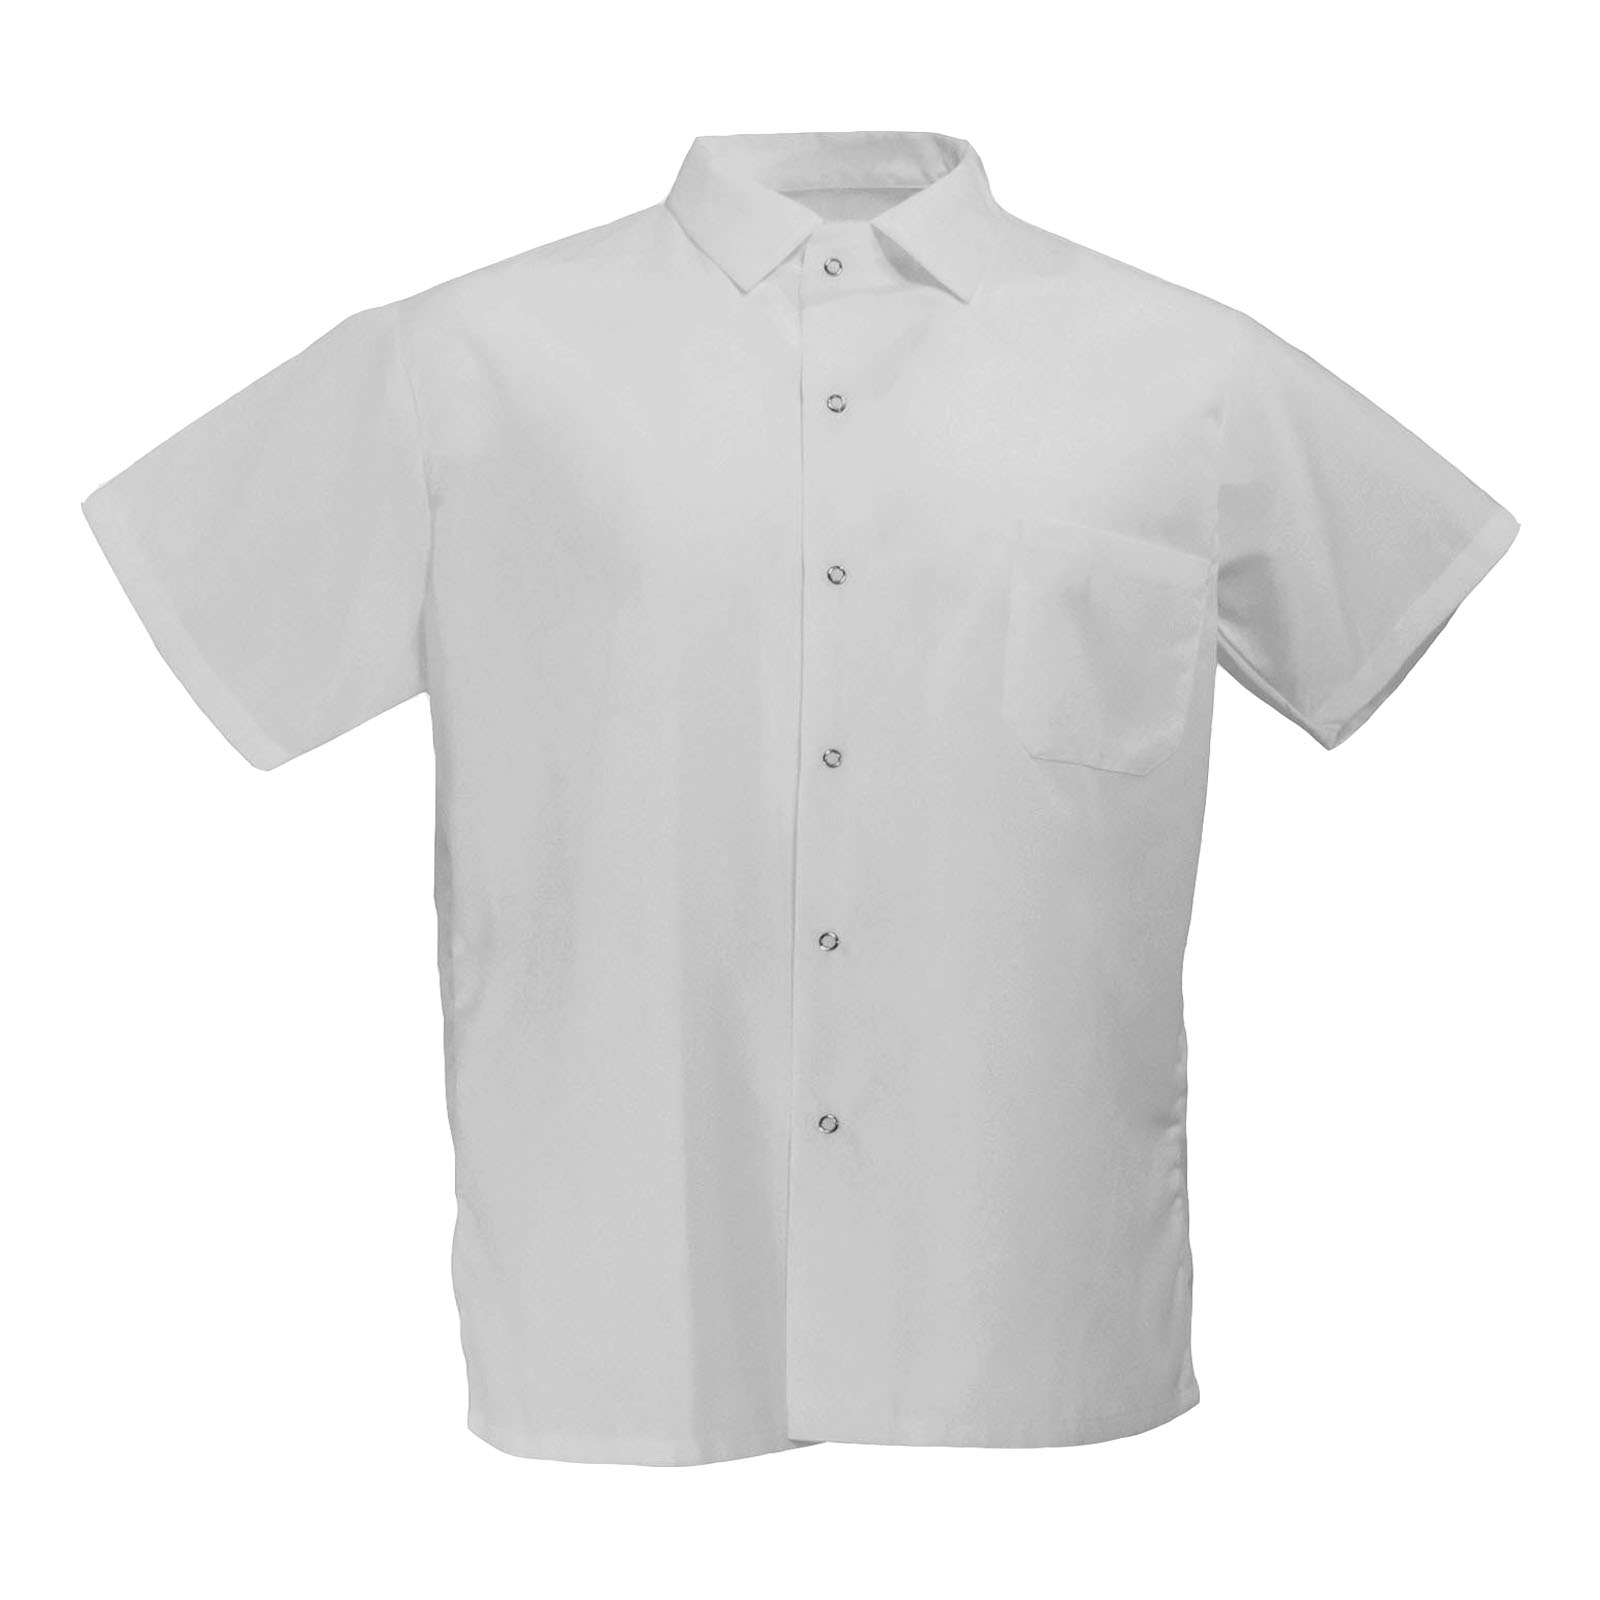 Cook Shirt With Pocket-PINNACLE HD